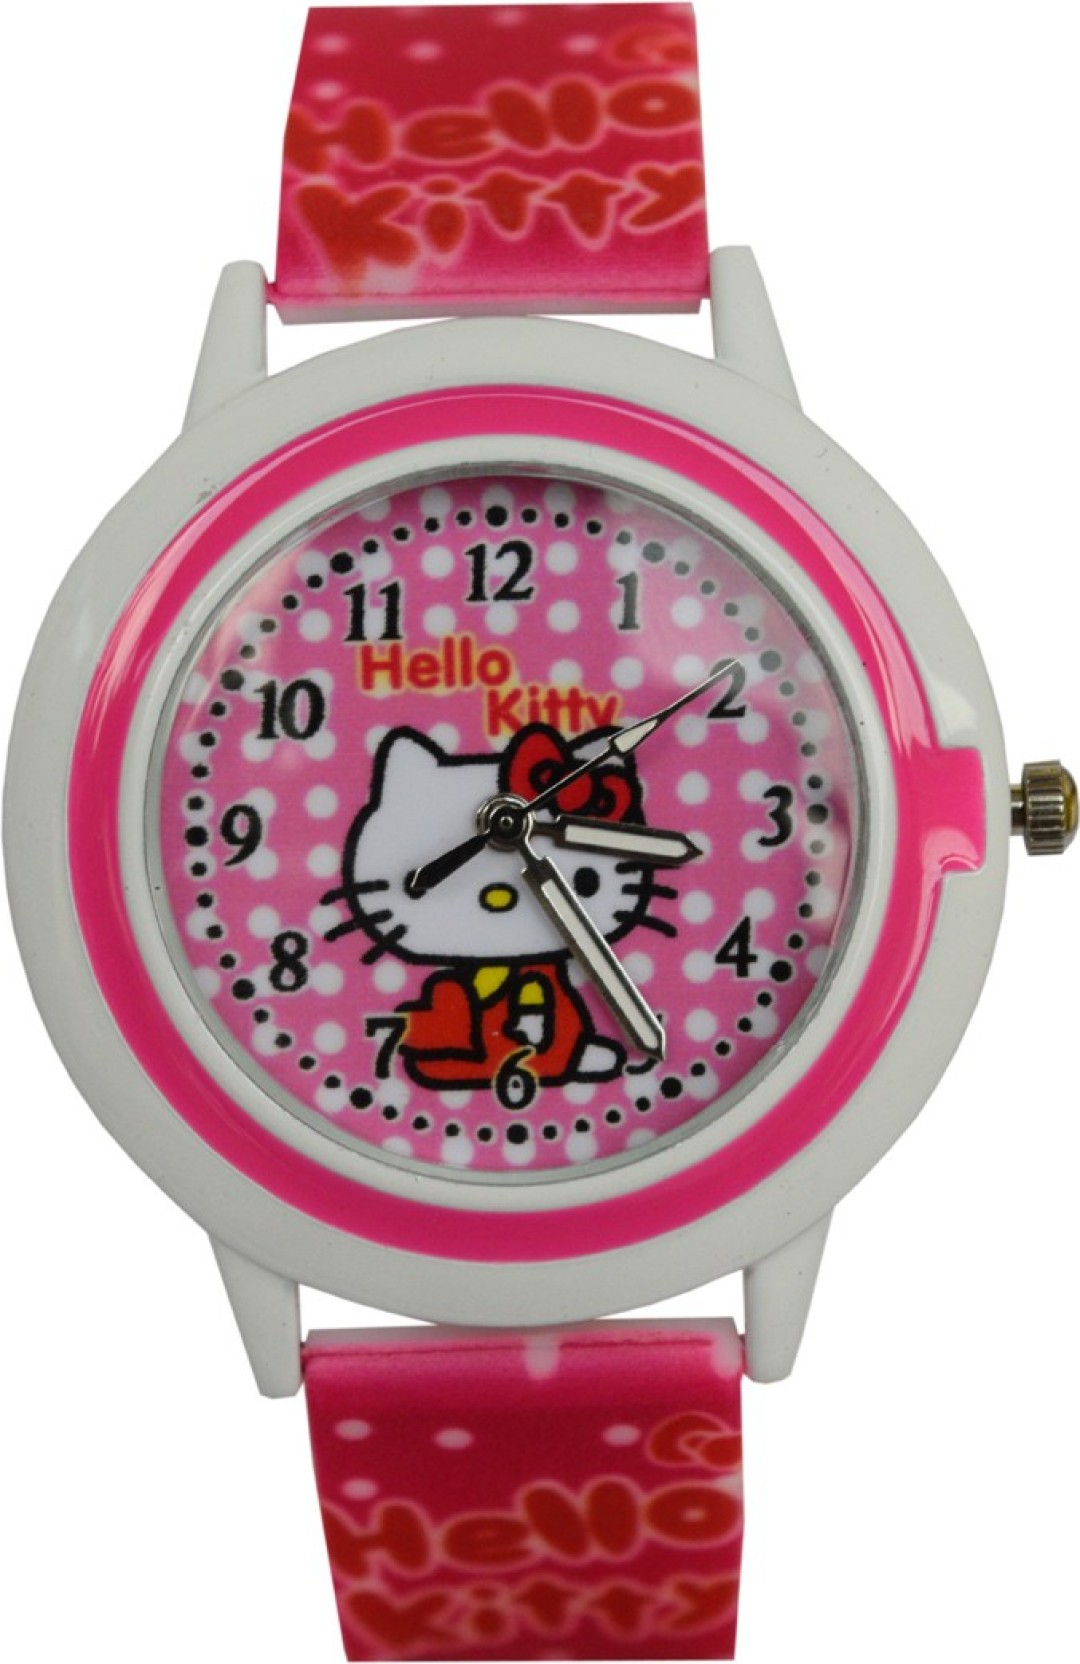 Creator TM Hello Kitty New Round Dial Birthday Gifts Sent As Per